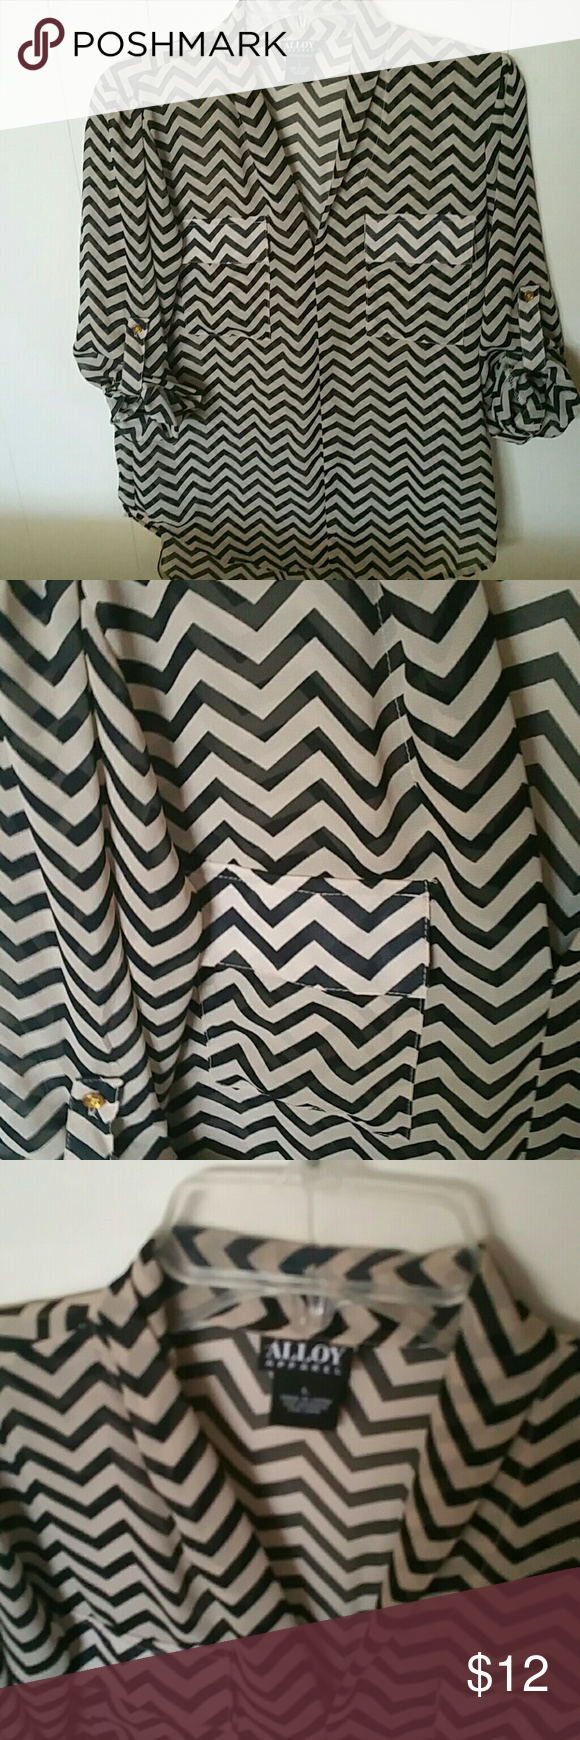 """Boutique Chiffon Zig Zag Hi Lo Blouse Purchased at a boutique Worn once.. chiffon sheer tan and black Zig zag.. hi-lo blouse .. Sz L. Longer on rear of blouse. Adjustable button up 3/4 sleeves. Under armpit to under armpit 19"""" Length from shoulder to end of blouse 24.5"""" on front & 30.5"""" on rear Alloy Apparel  Tops Blouses"""